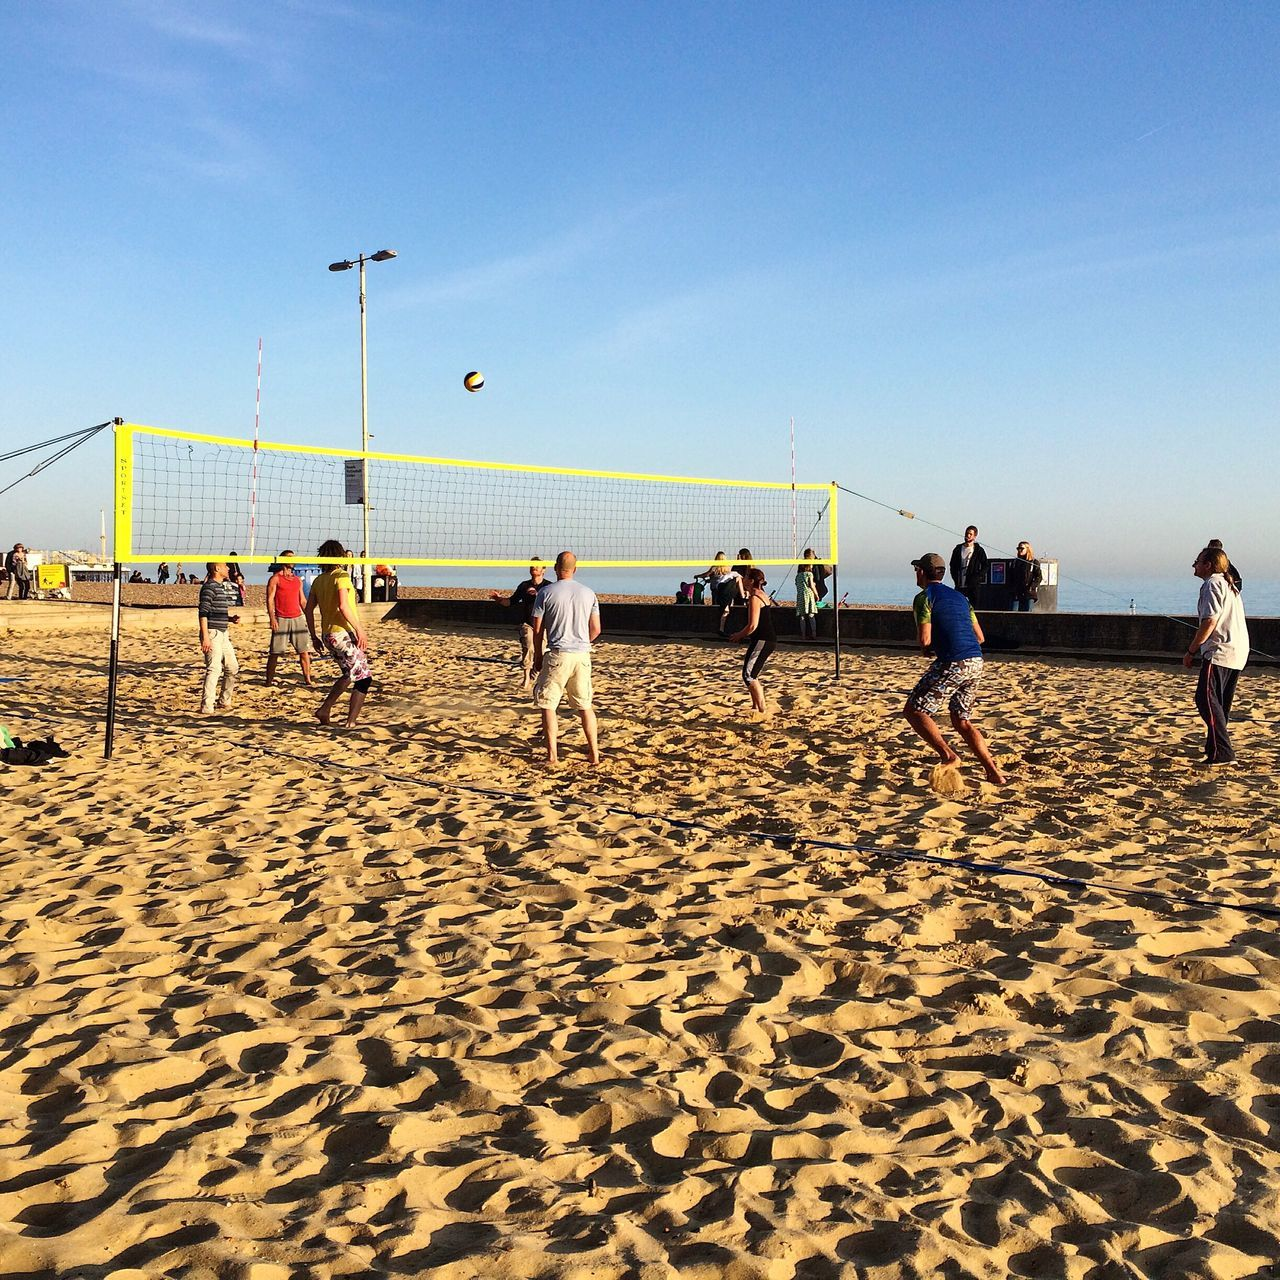 Brighton Brighton Beach Volleyball Beach Blue Sky Sports United Kingdom Players Outdoor Playing